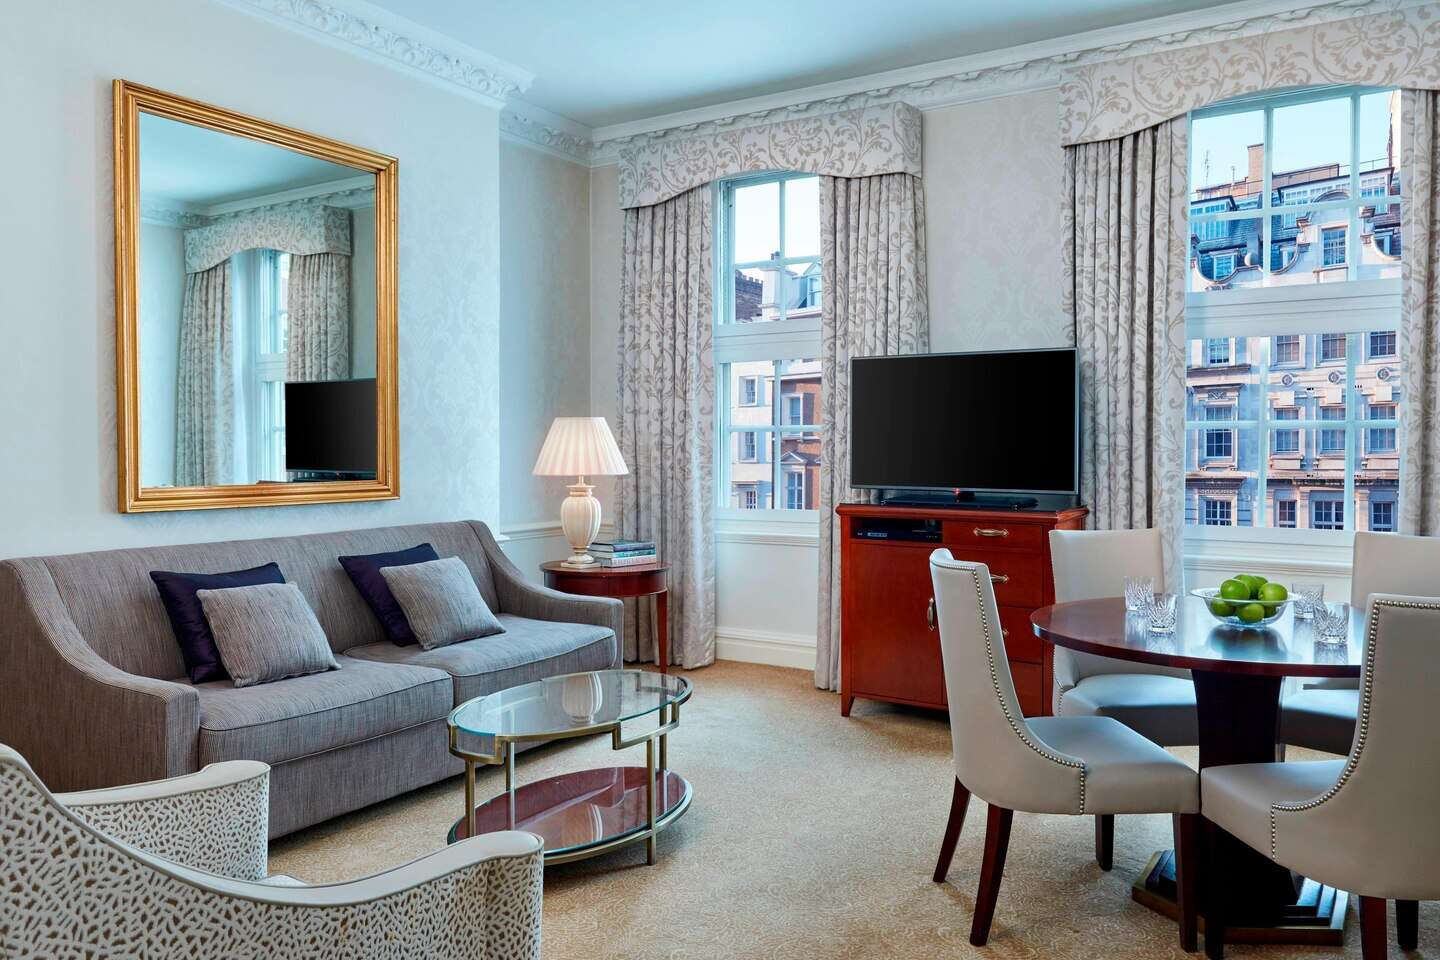 Luxury vacation rentals europe - United kingdom - London area - Grand residences by marriott mayfair - Executive Suite - Image 1/6